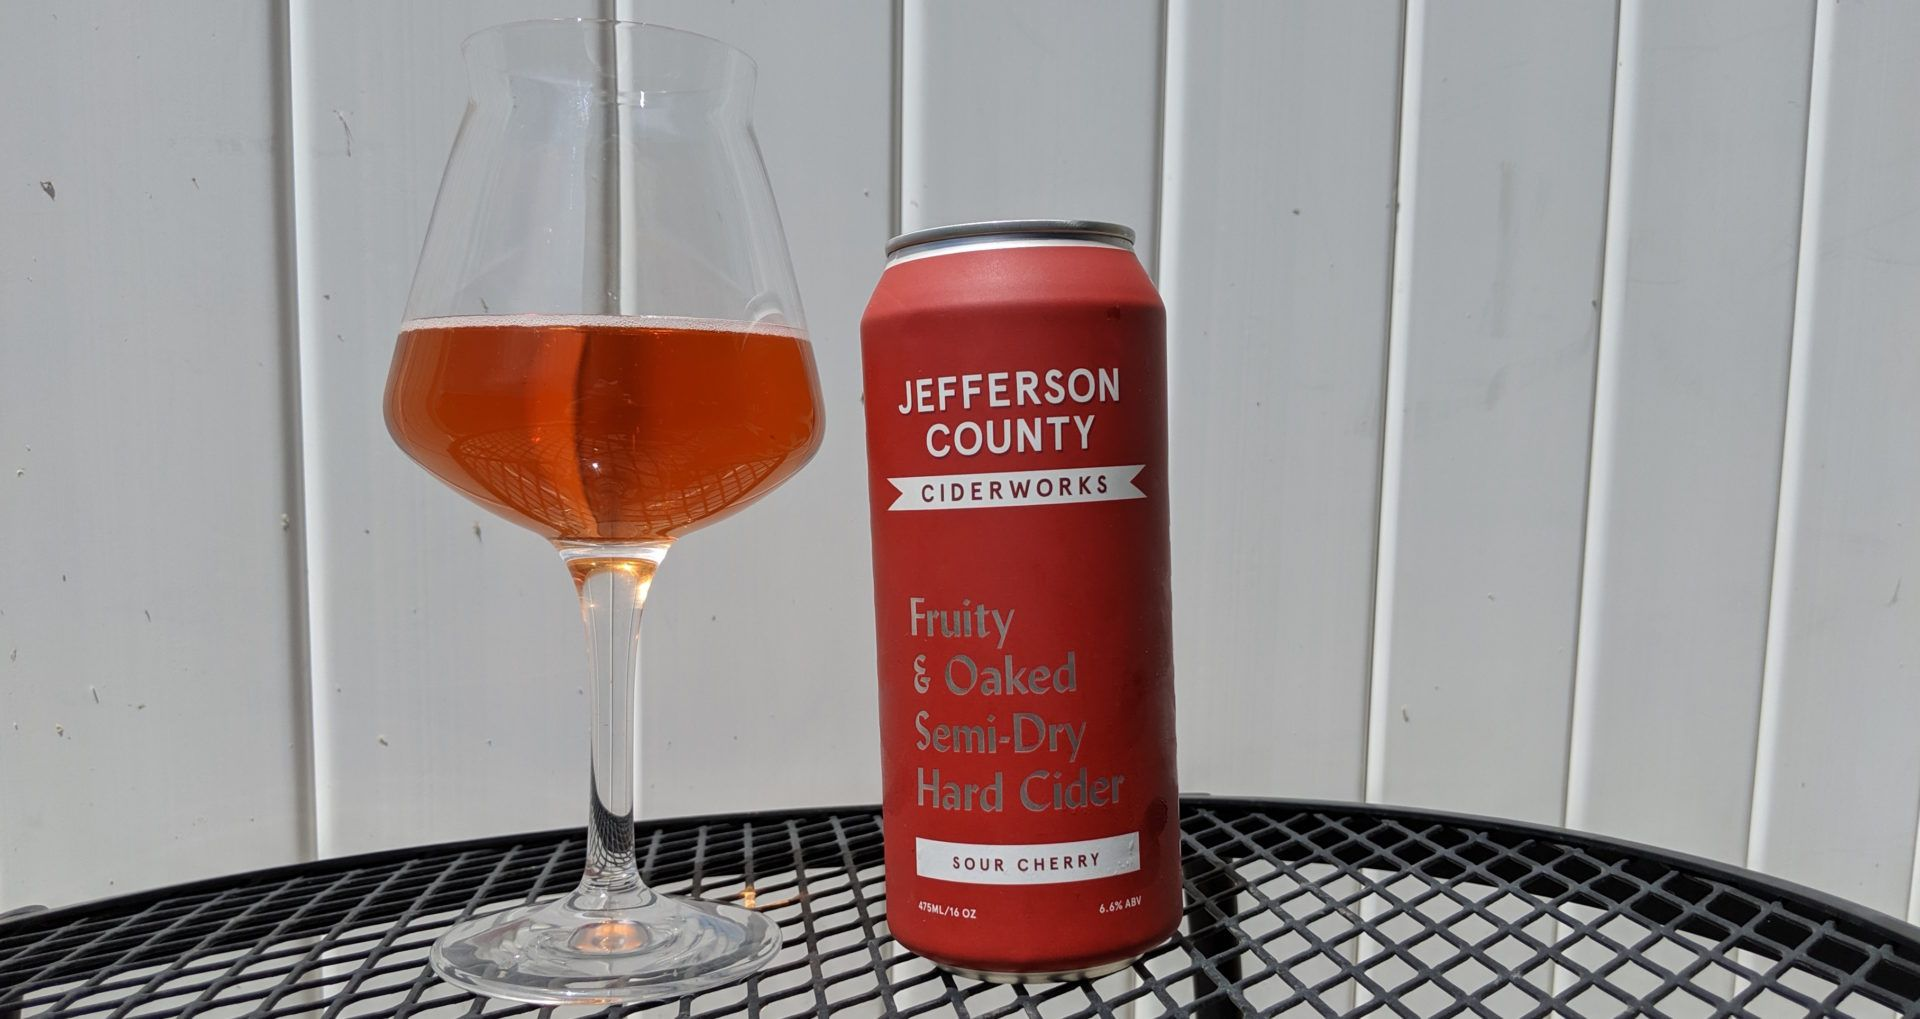 Review Oaked Sour Cherry By Jefferson County Ciderworks Sour Cherry Cider Maker Hard Cider